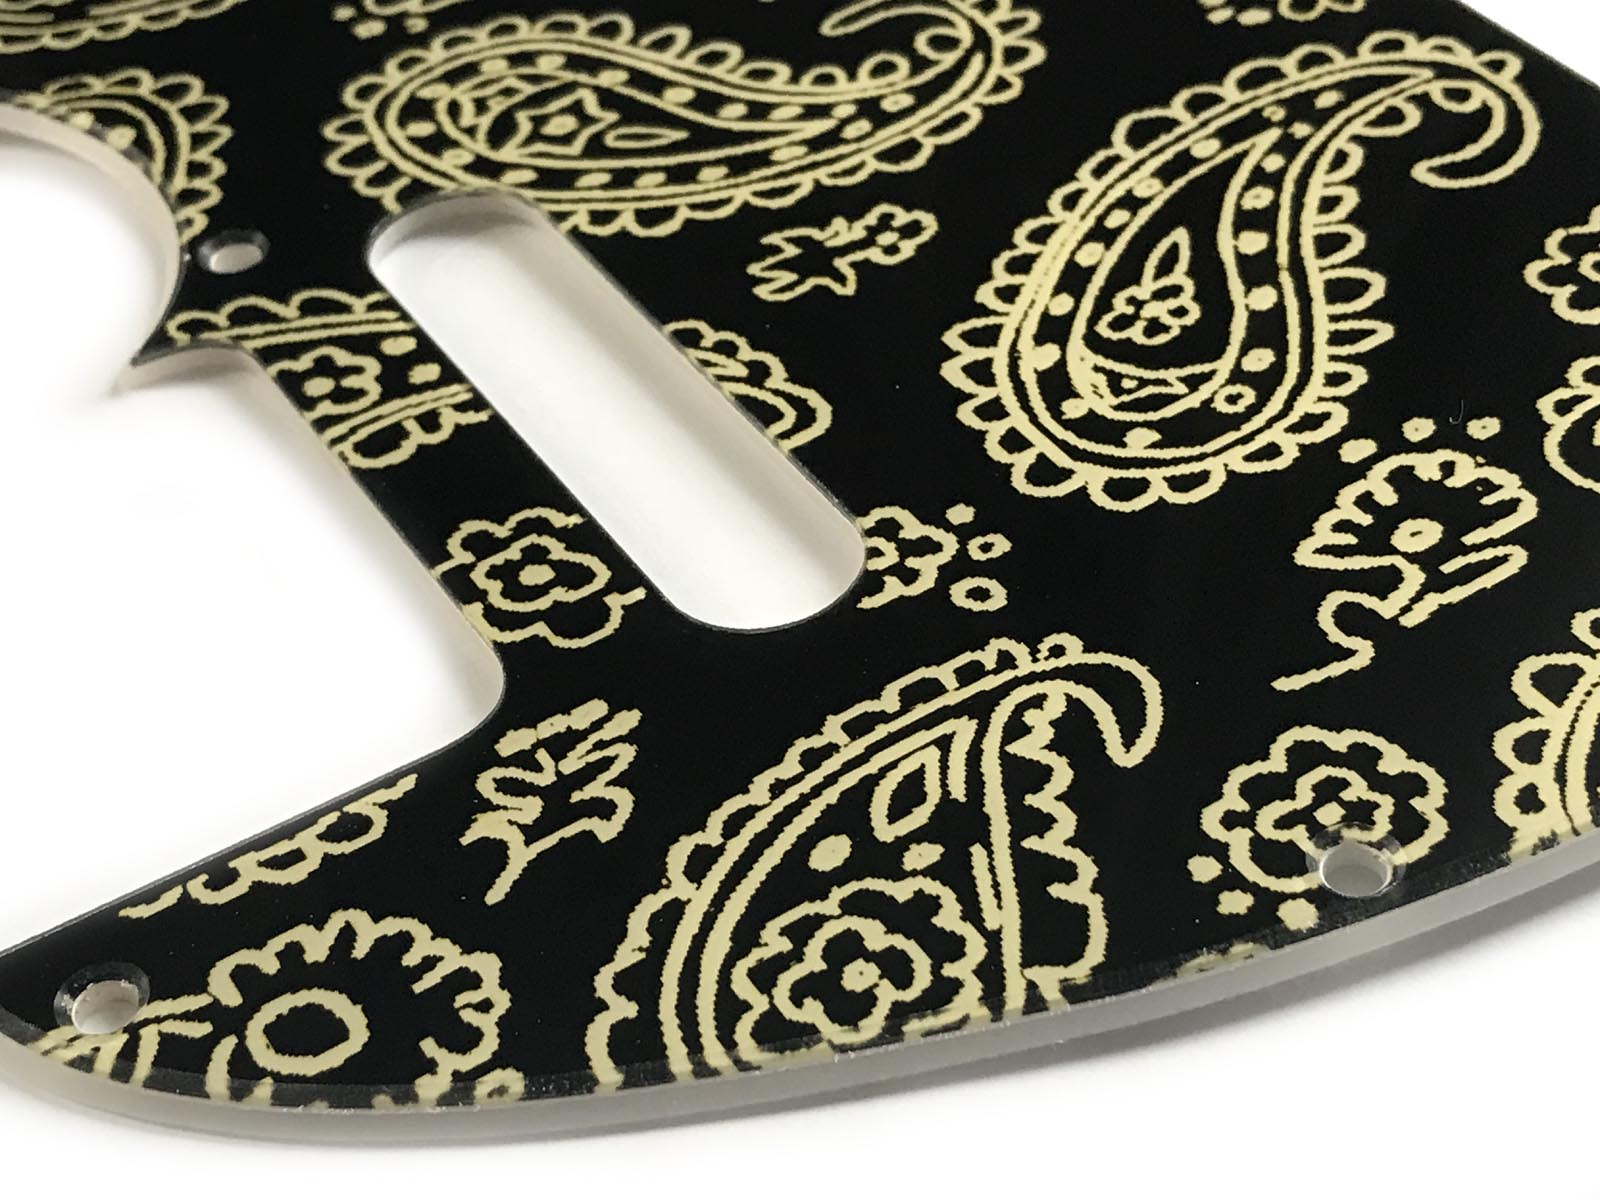 Telecaster Brad Paisley Black / Pale Yellow Paisley Pickguard 2-ply - SPECIAL ORDER